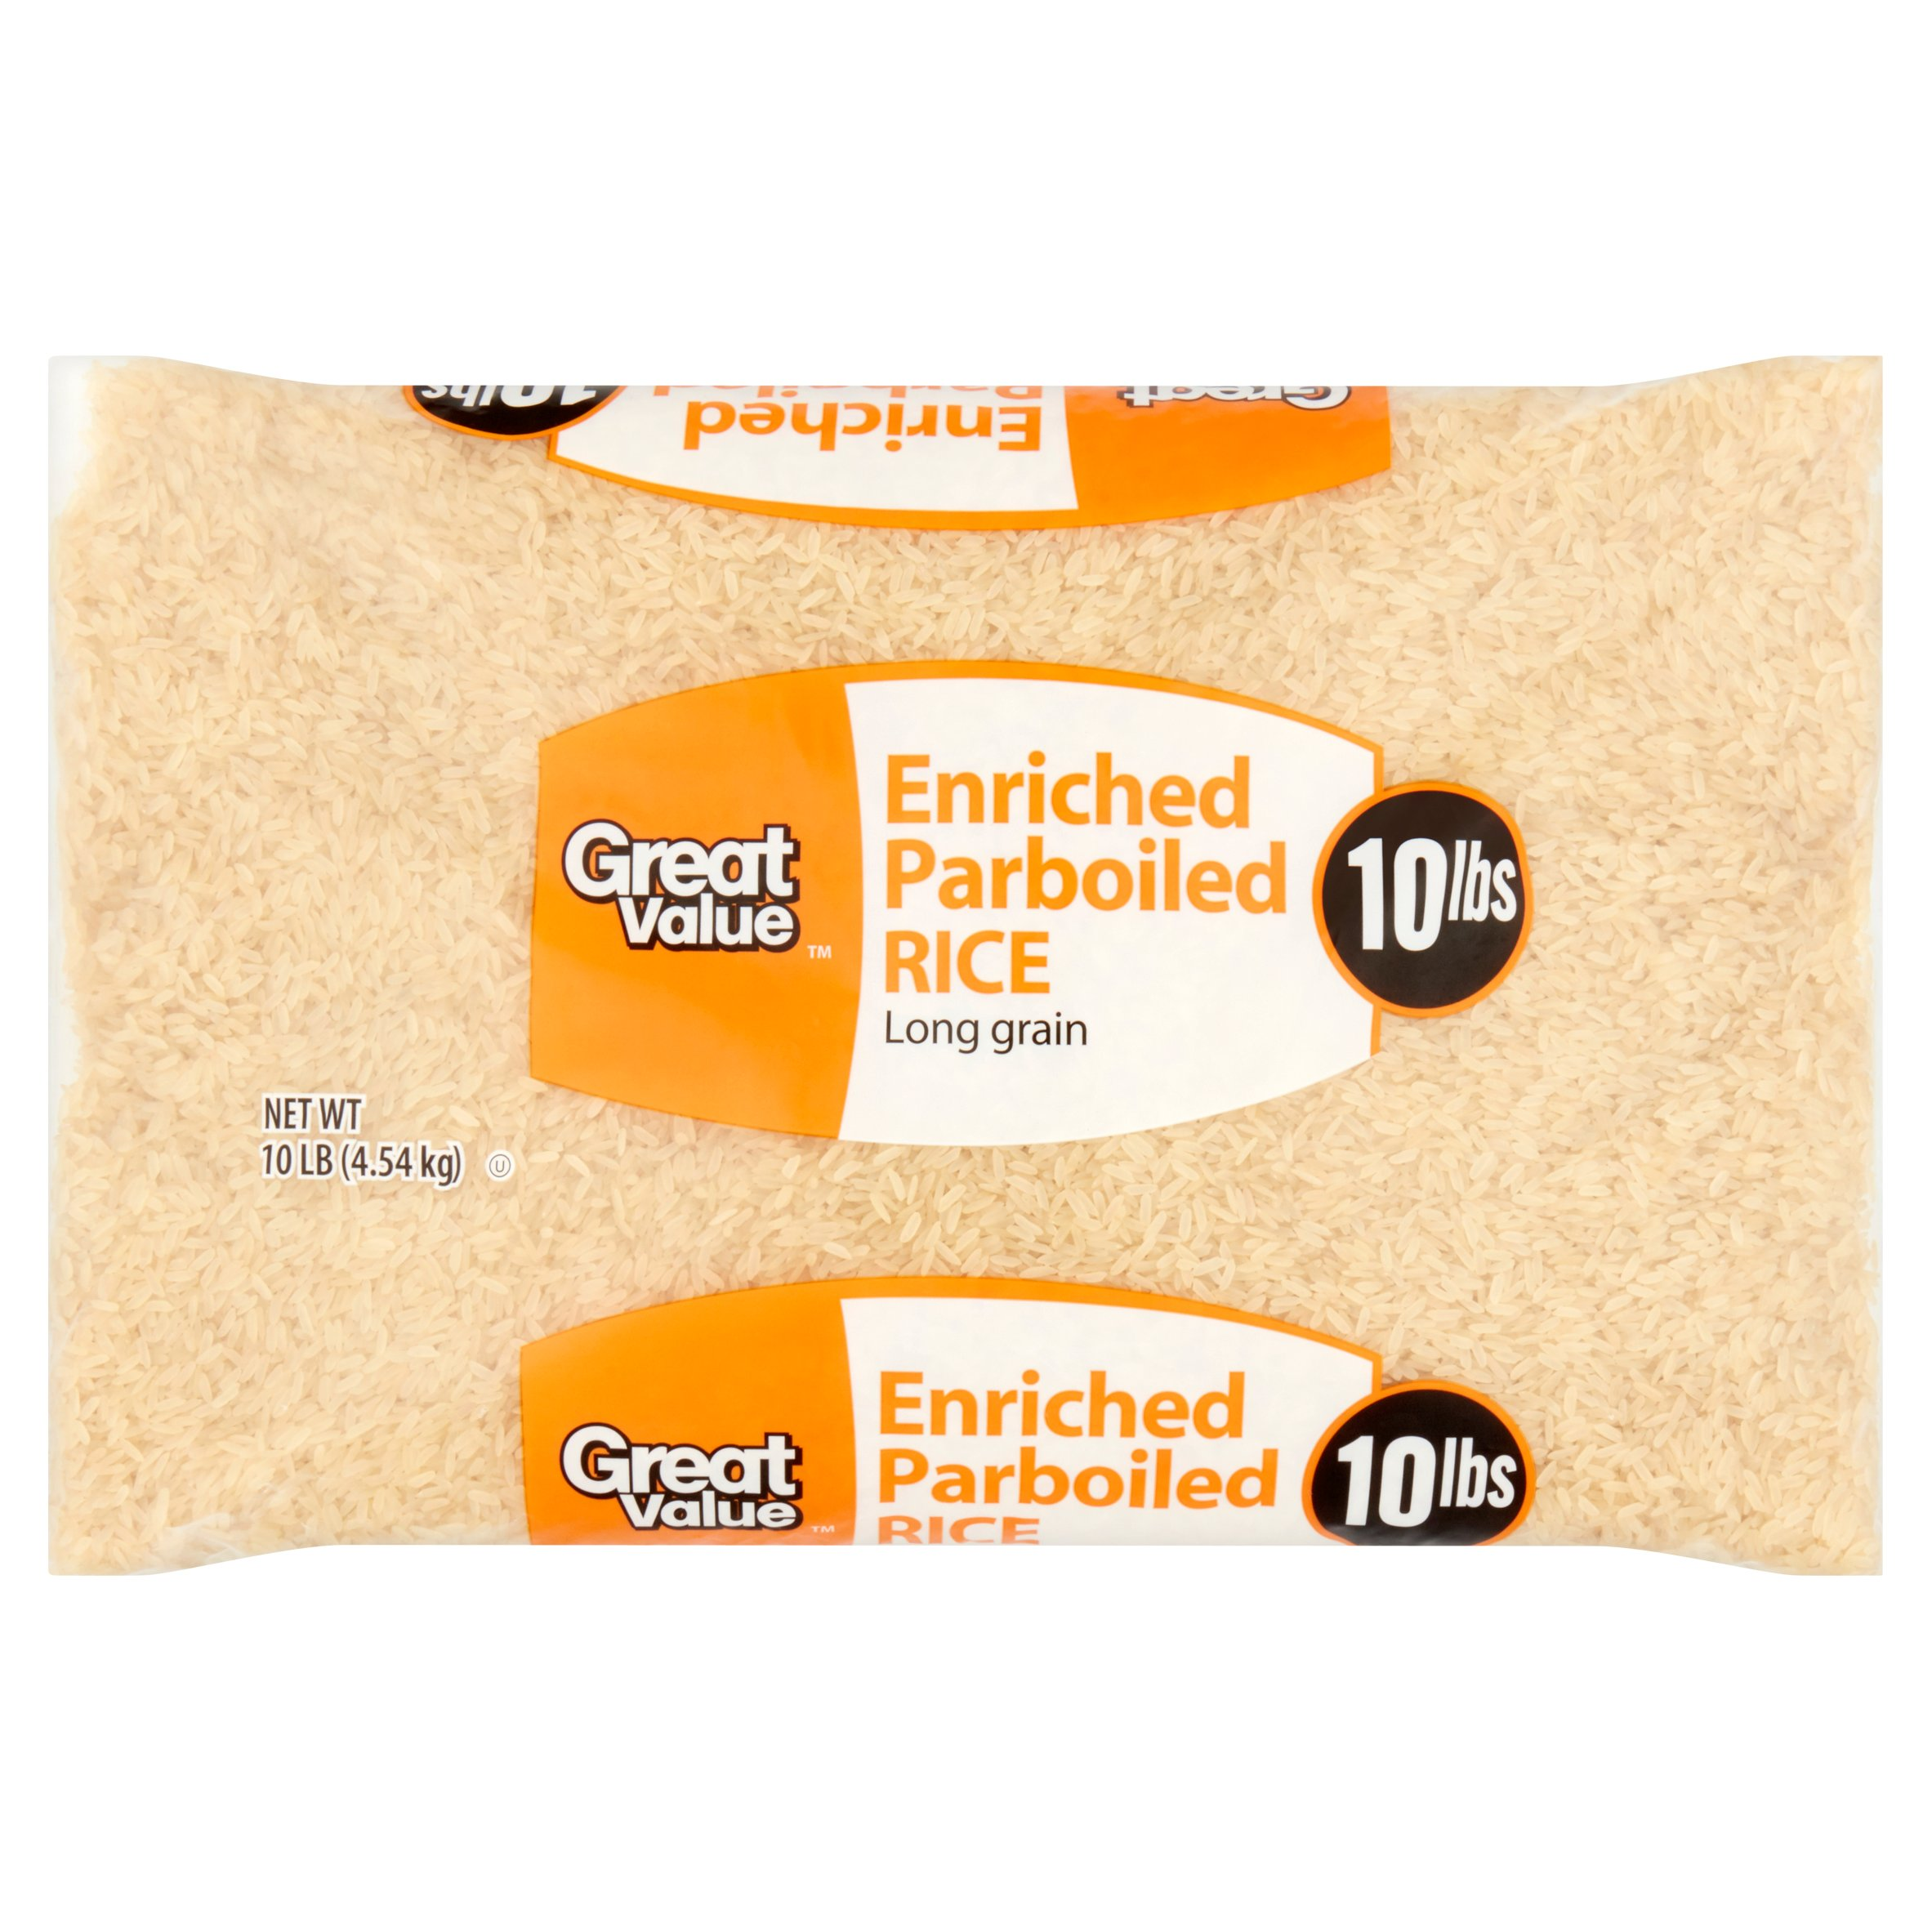 Great Value Parboiled Rice, 160 oz by Wal-Mart Stores, Inc.